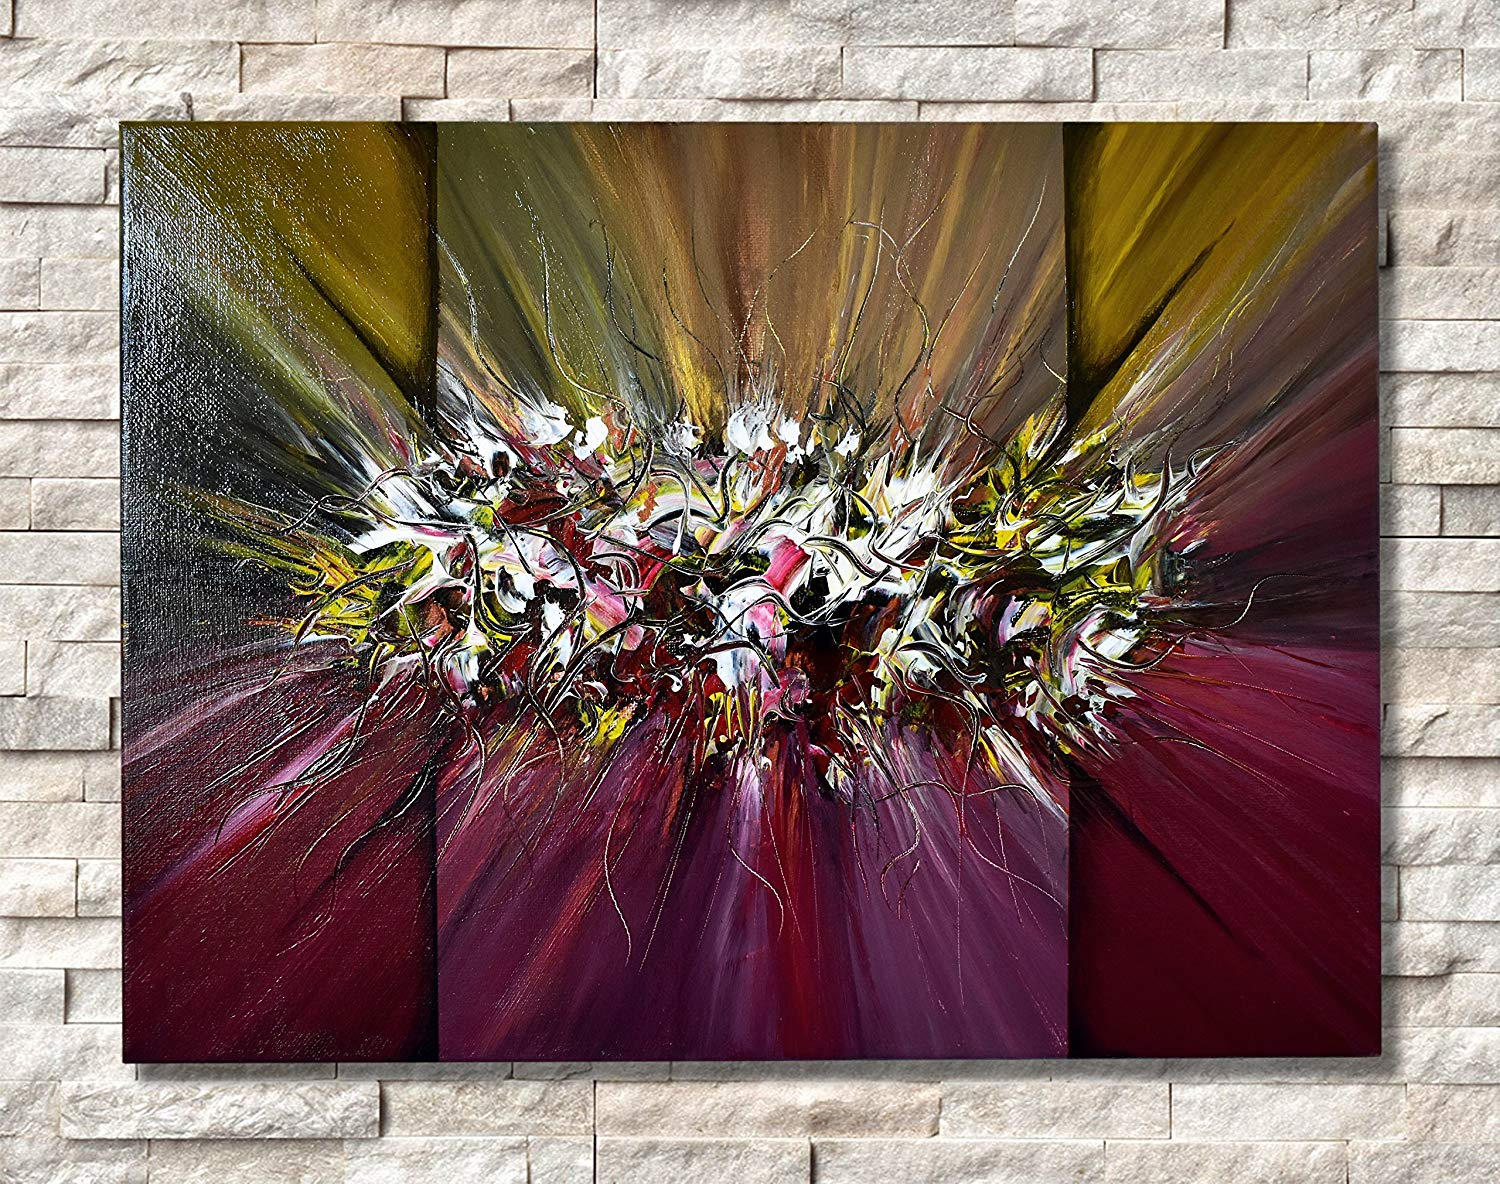 Acrylic Abstract painting on Canvas 12x16 in, Handmade painting, Resin Modern Art